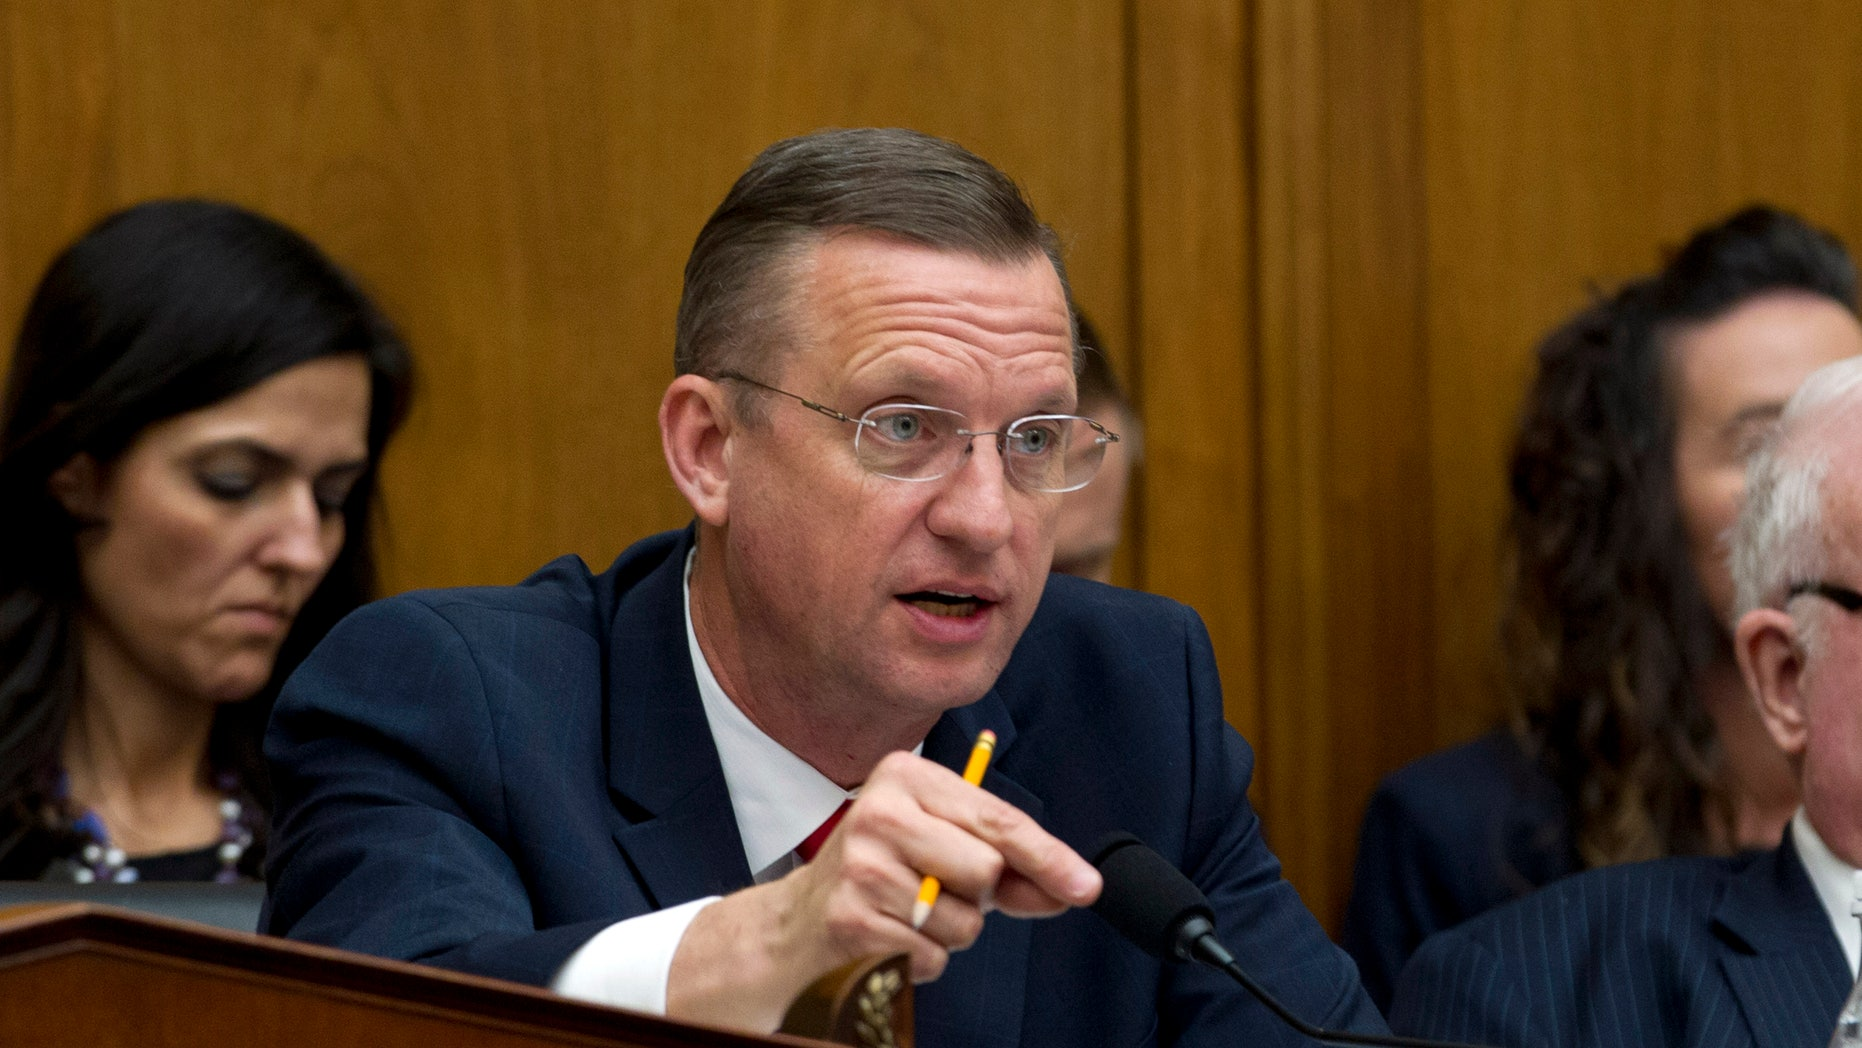 House Judiciary Committee Ranking Member Rep. Doug Collins, R-Ga. speaks during the House Judiciary Committee on the Trump administration's separation policy involving migrant families on Capitol Hill in Washington, Tuesday, Feb. 26, 2019. (AP Photo/Jose Luis Magana)